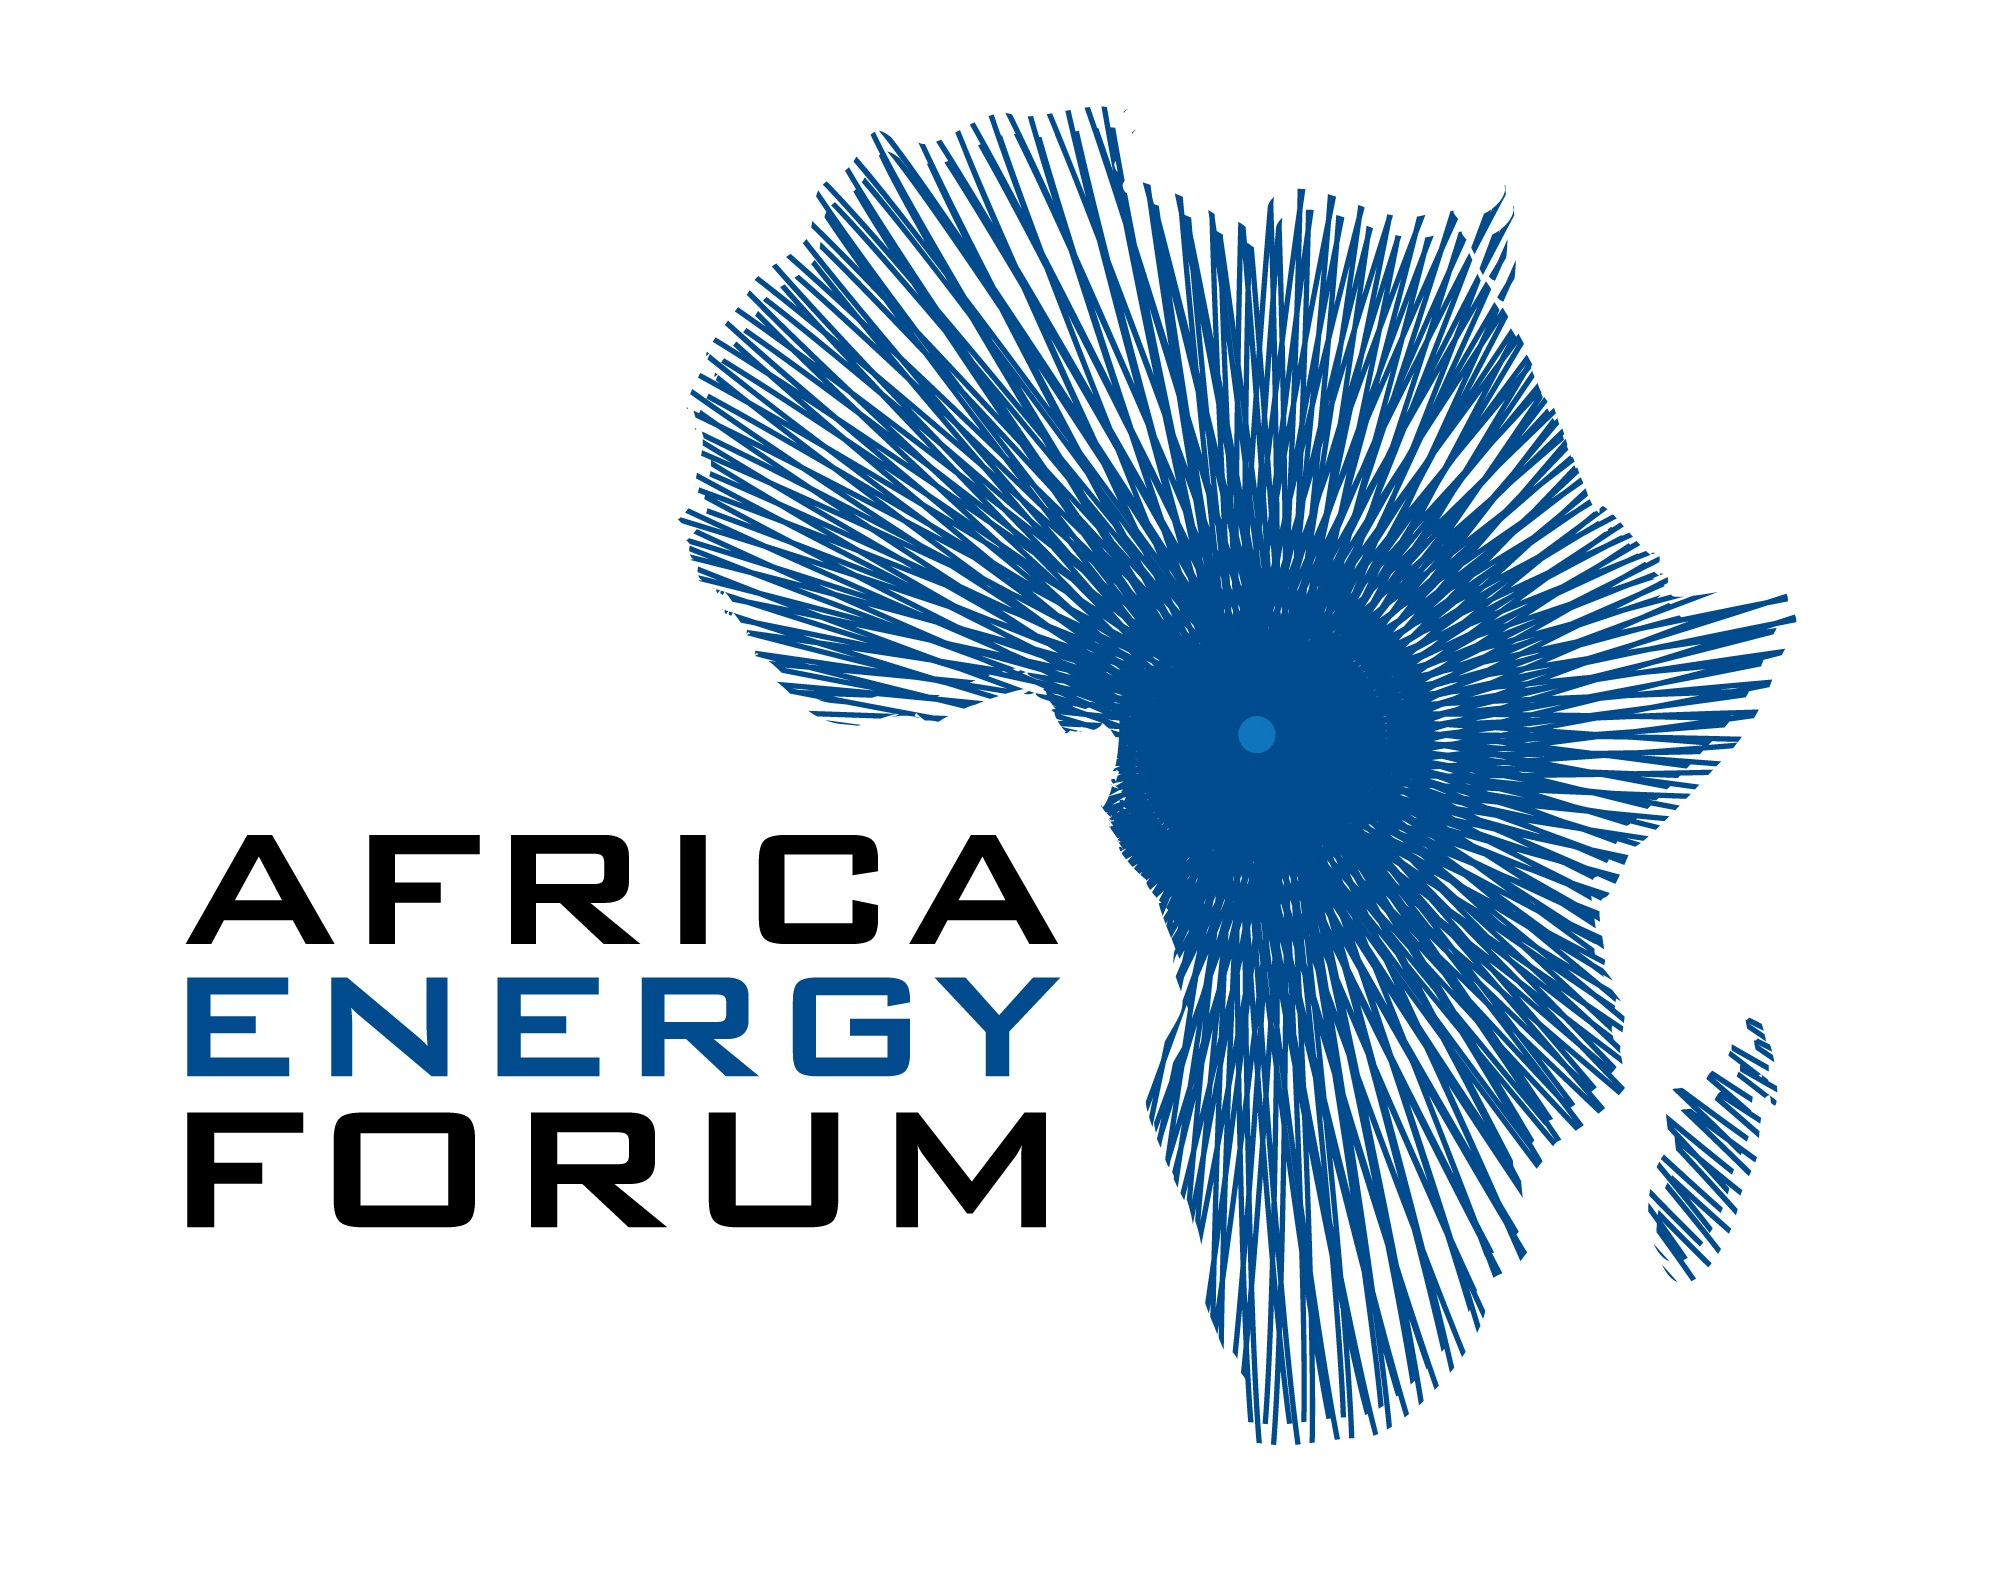 THE AFRICA ENERGY FORUM